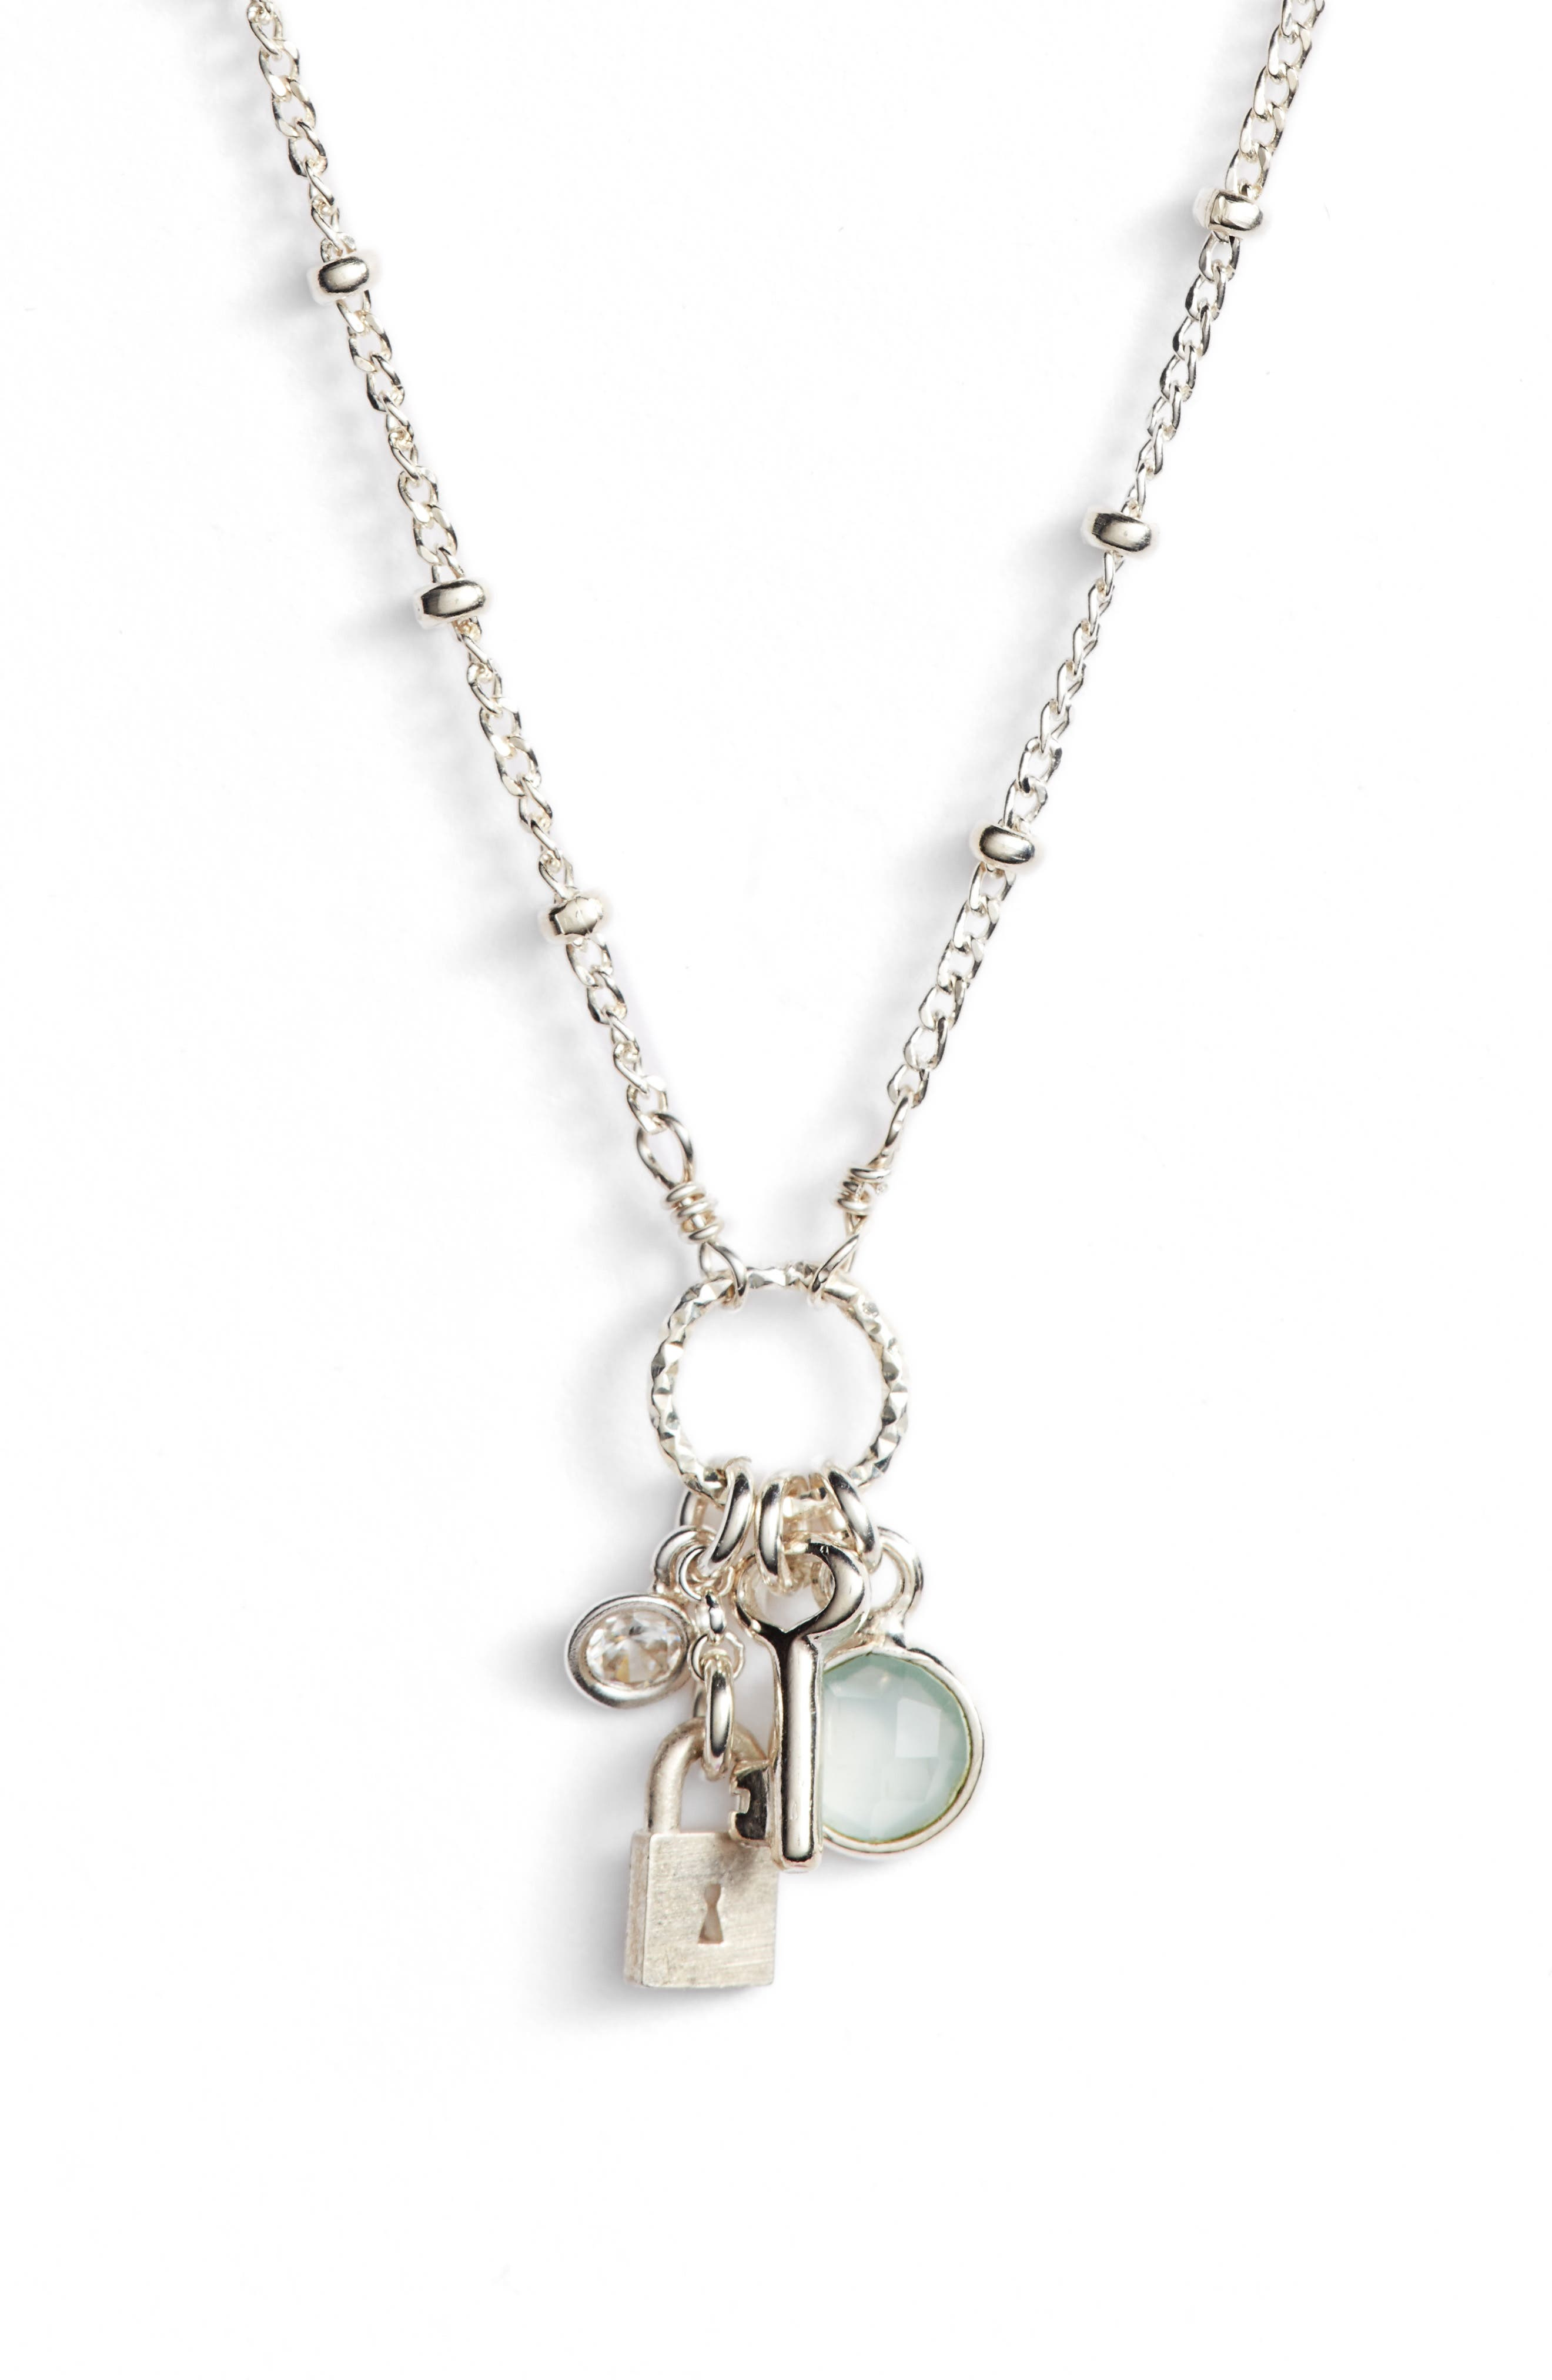 Unlock Your Dreams Lock & Key Charm Pendant Necklace,                             Alternate thumbnail 3, color,                             040